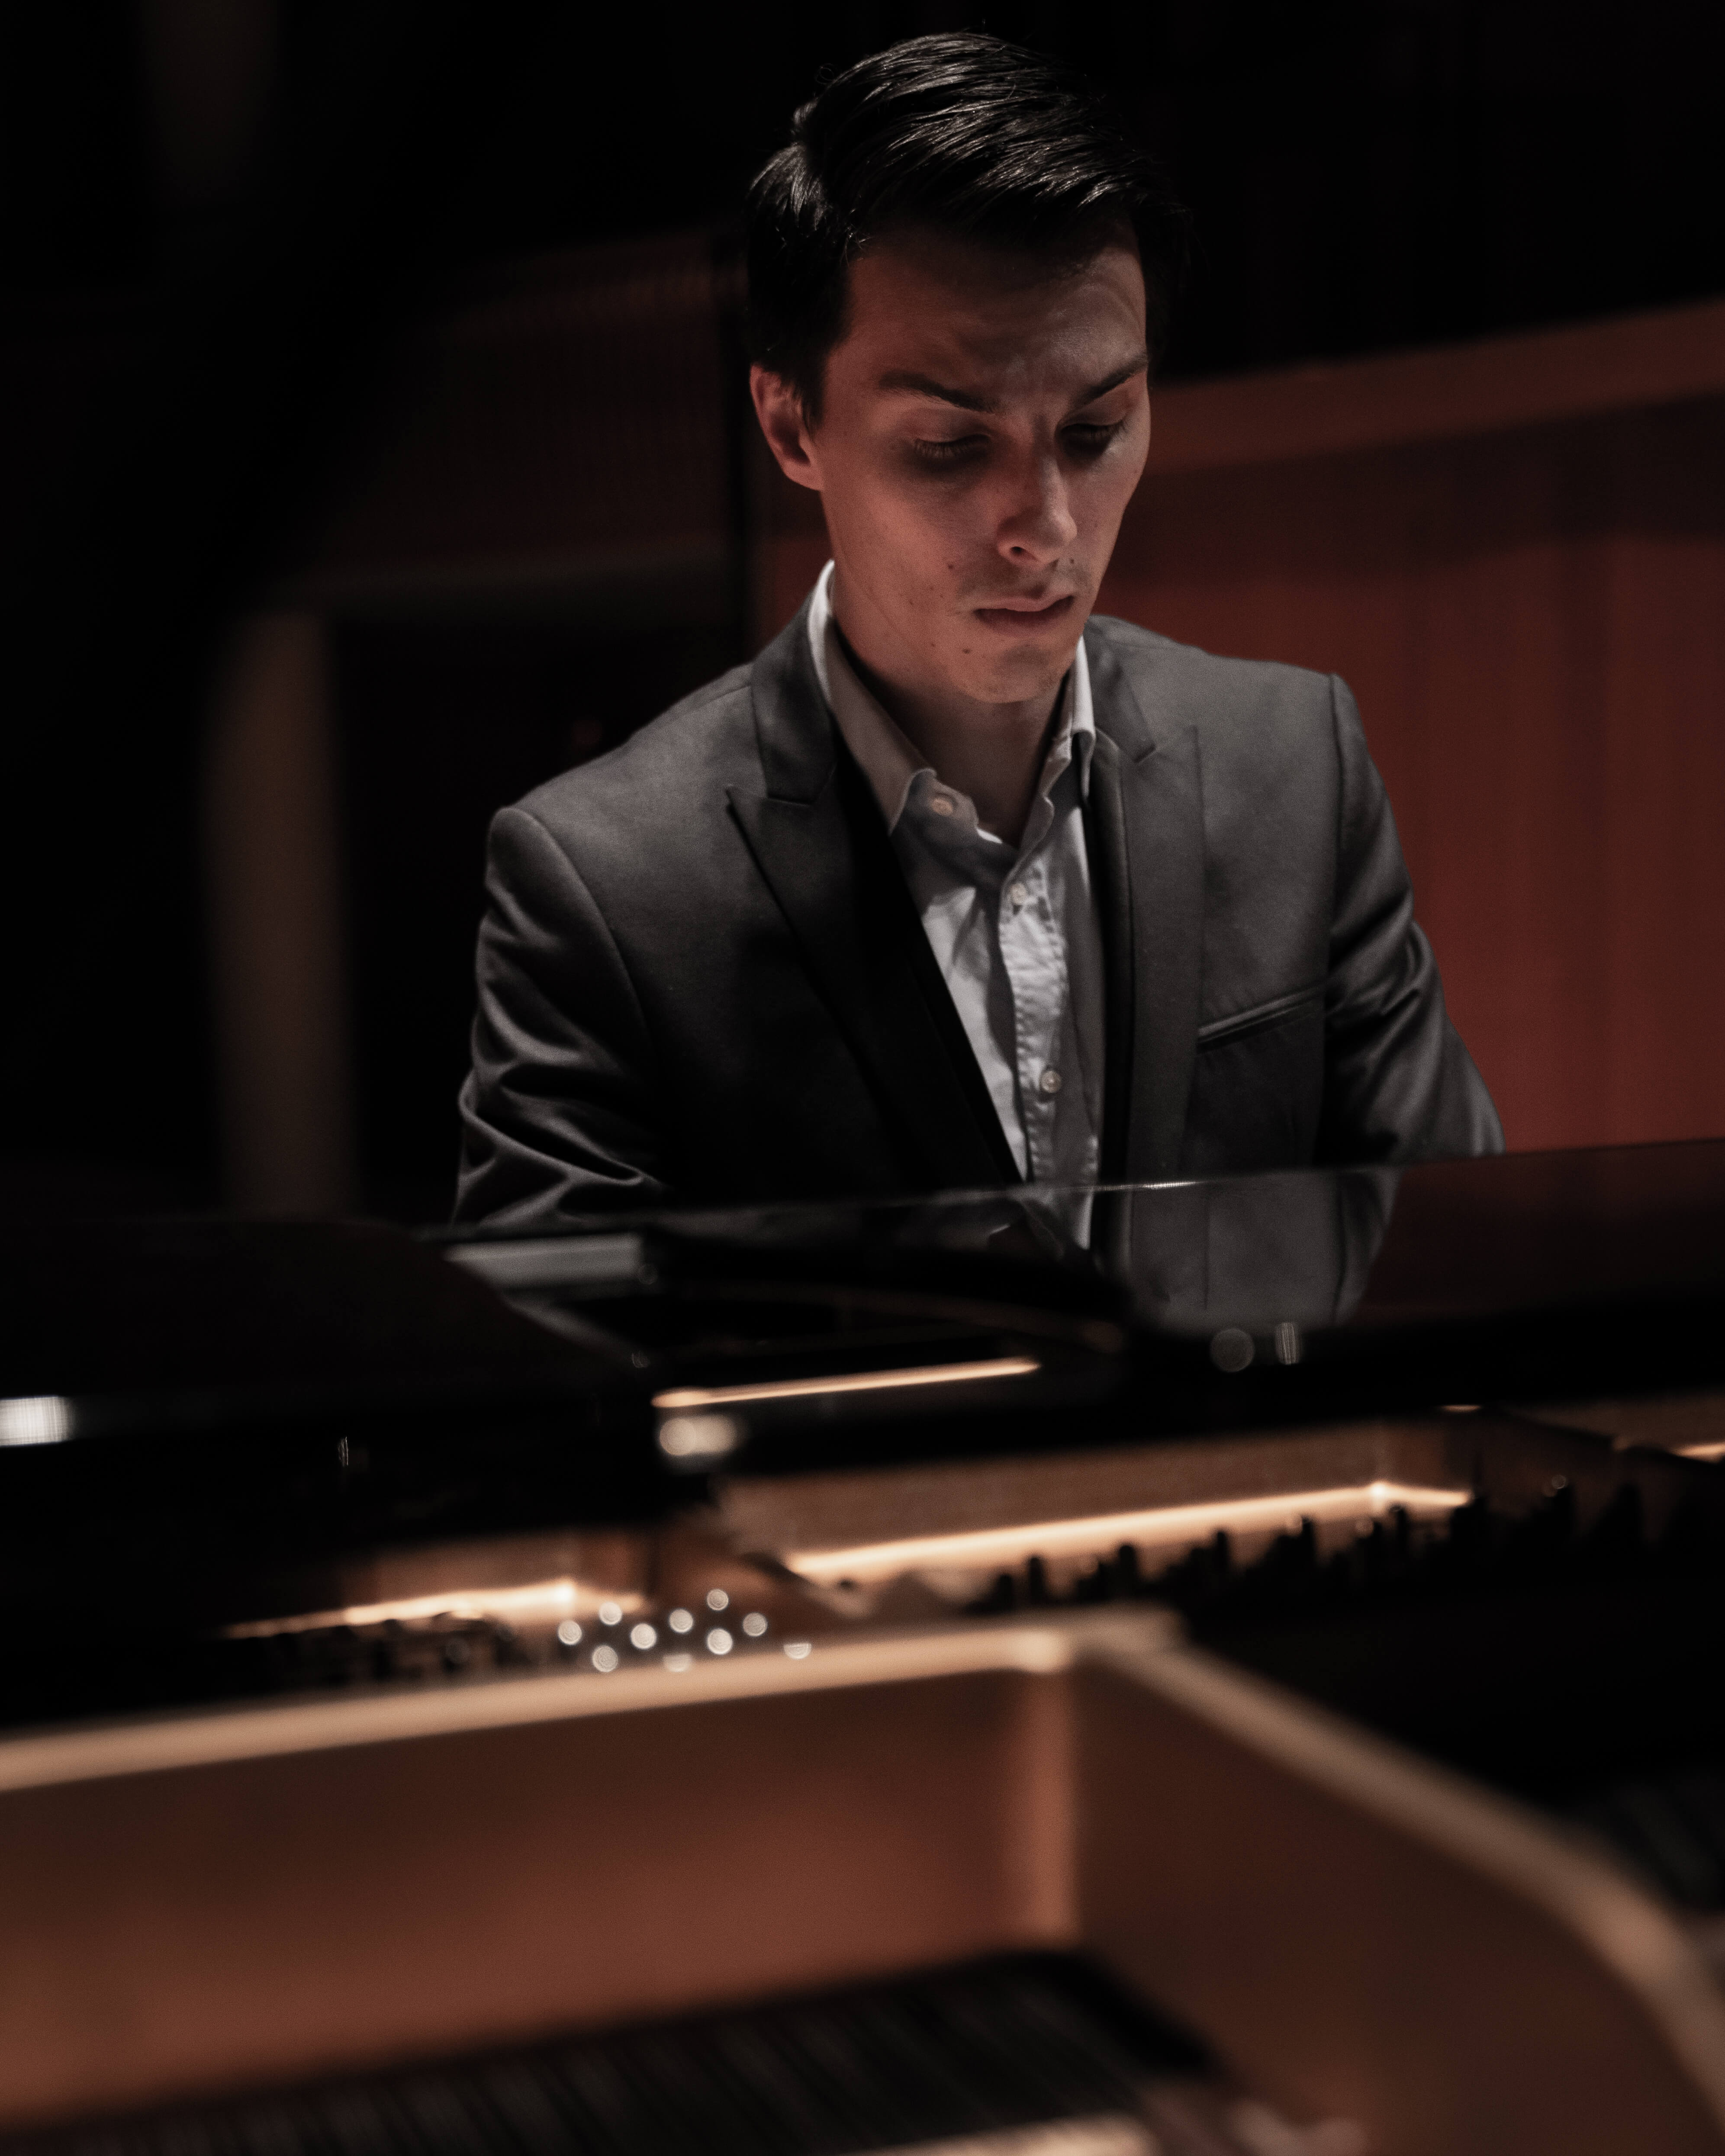 Liam Pitcher playing a Steinway and Sons grand piano in the Baxter Concert Hall.